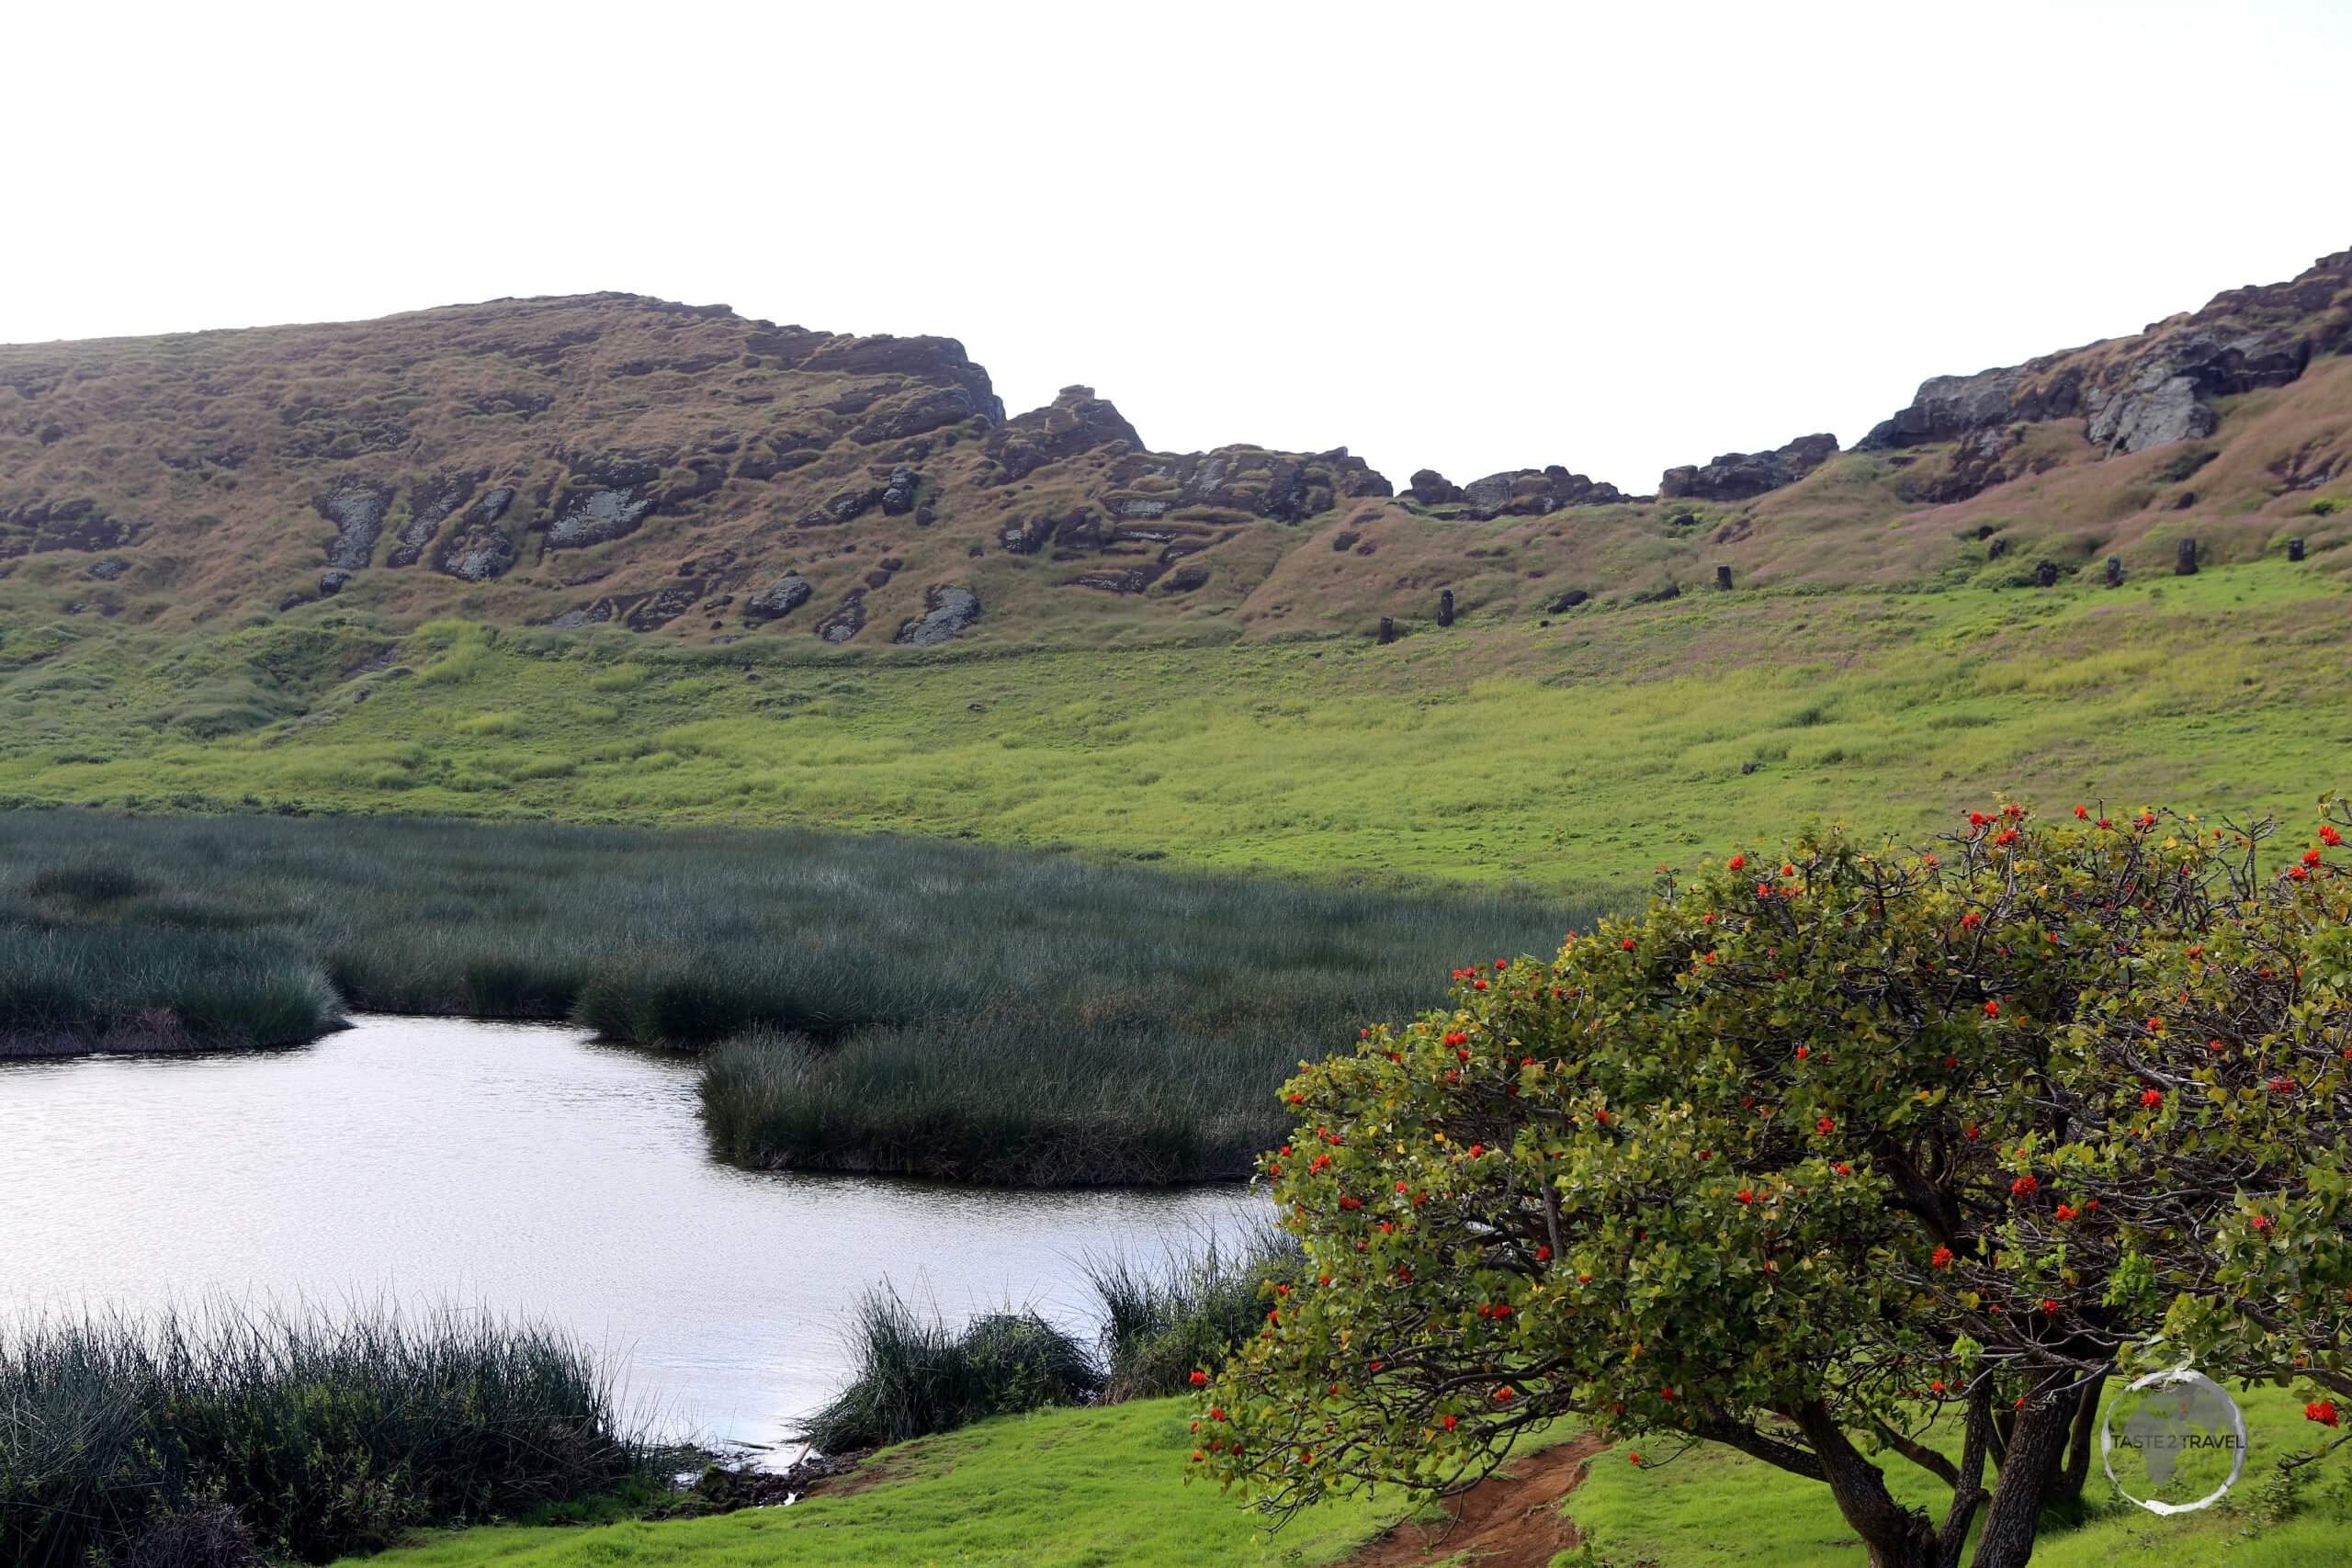 Rano Raraku, a volcanic crater located in the south-eastern corner of Easter Island, was the main quarry for the massive monolithic sculptures, known as moai, created by the Rapa Nui people.